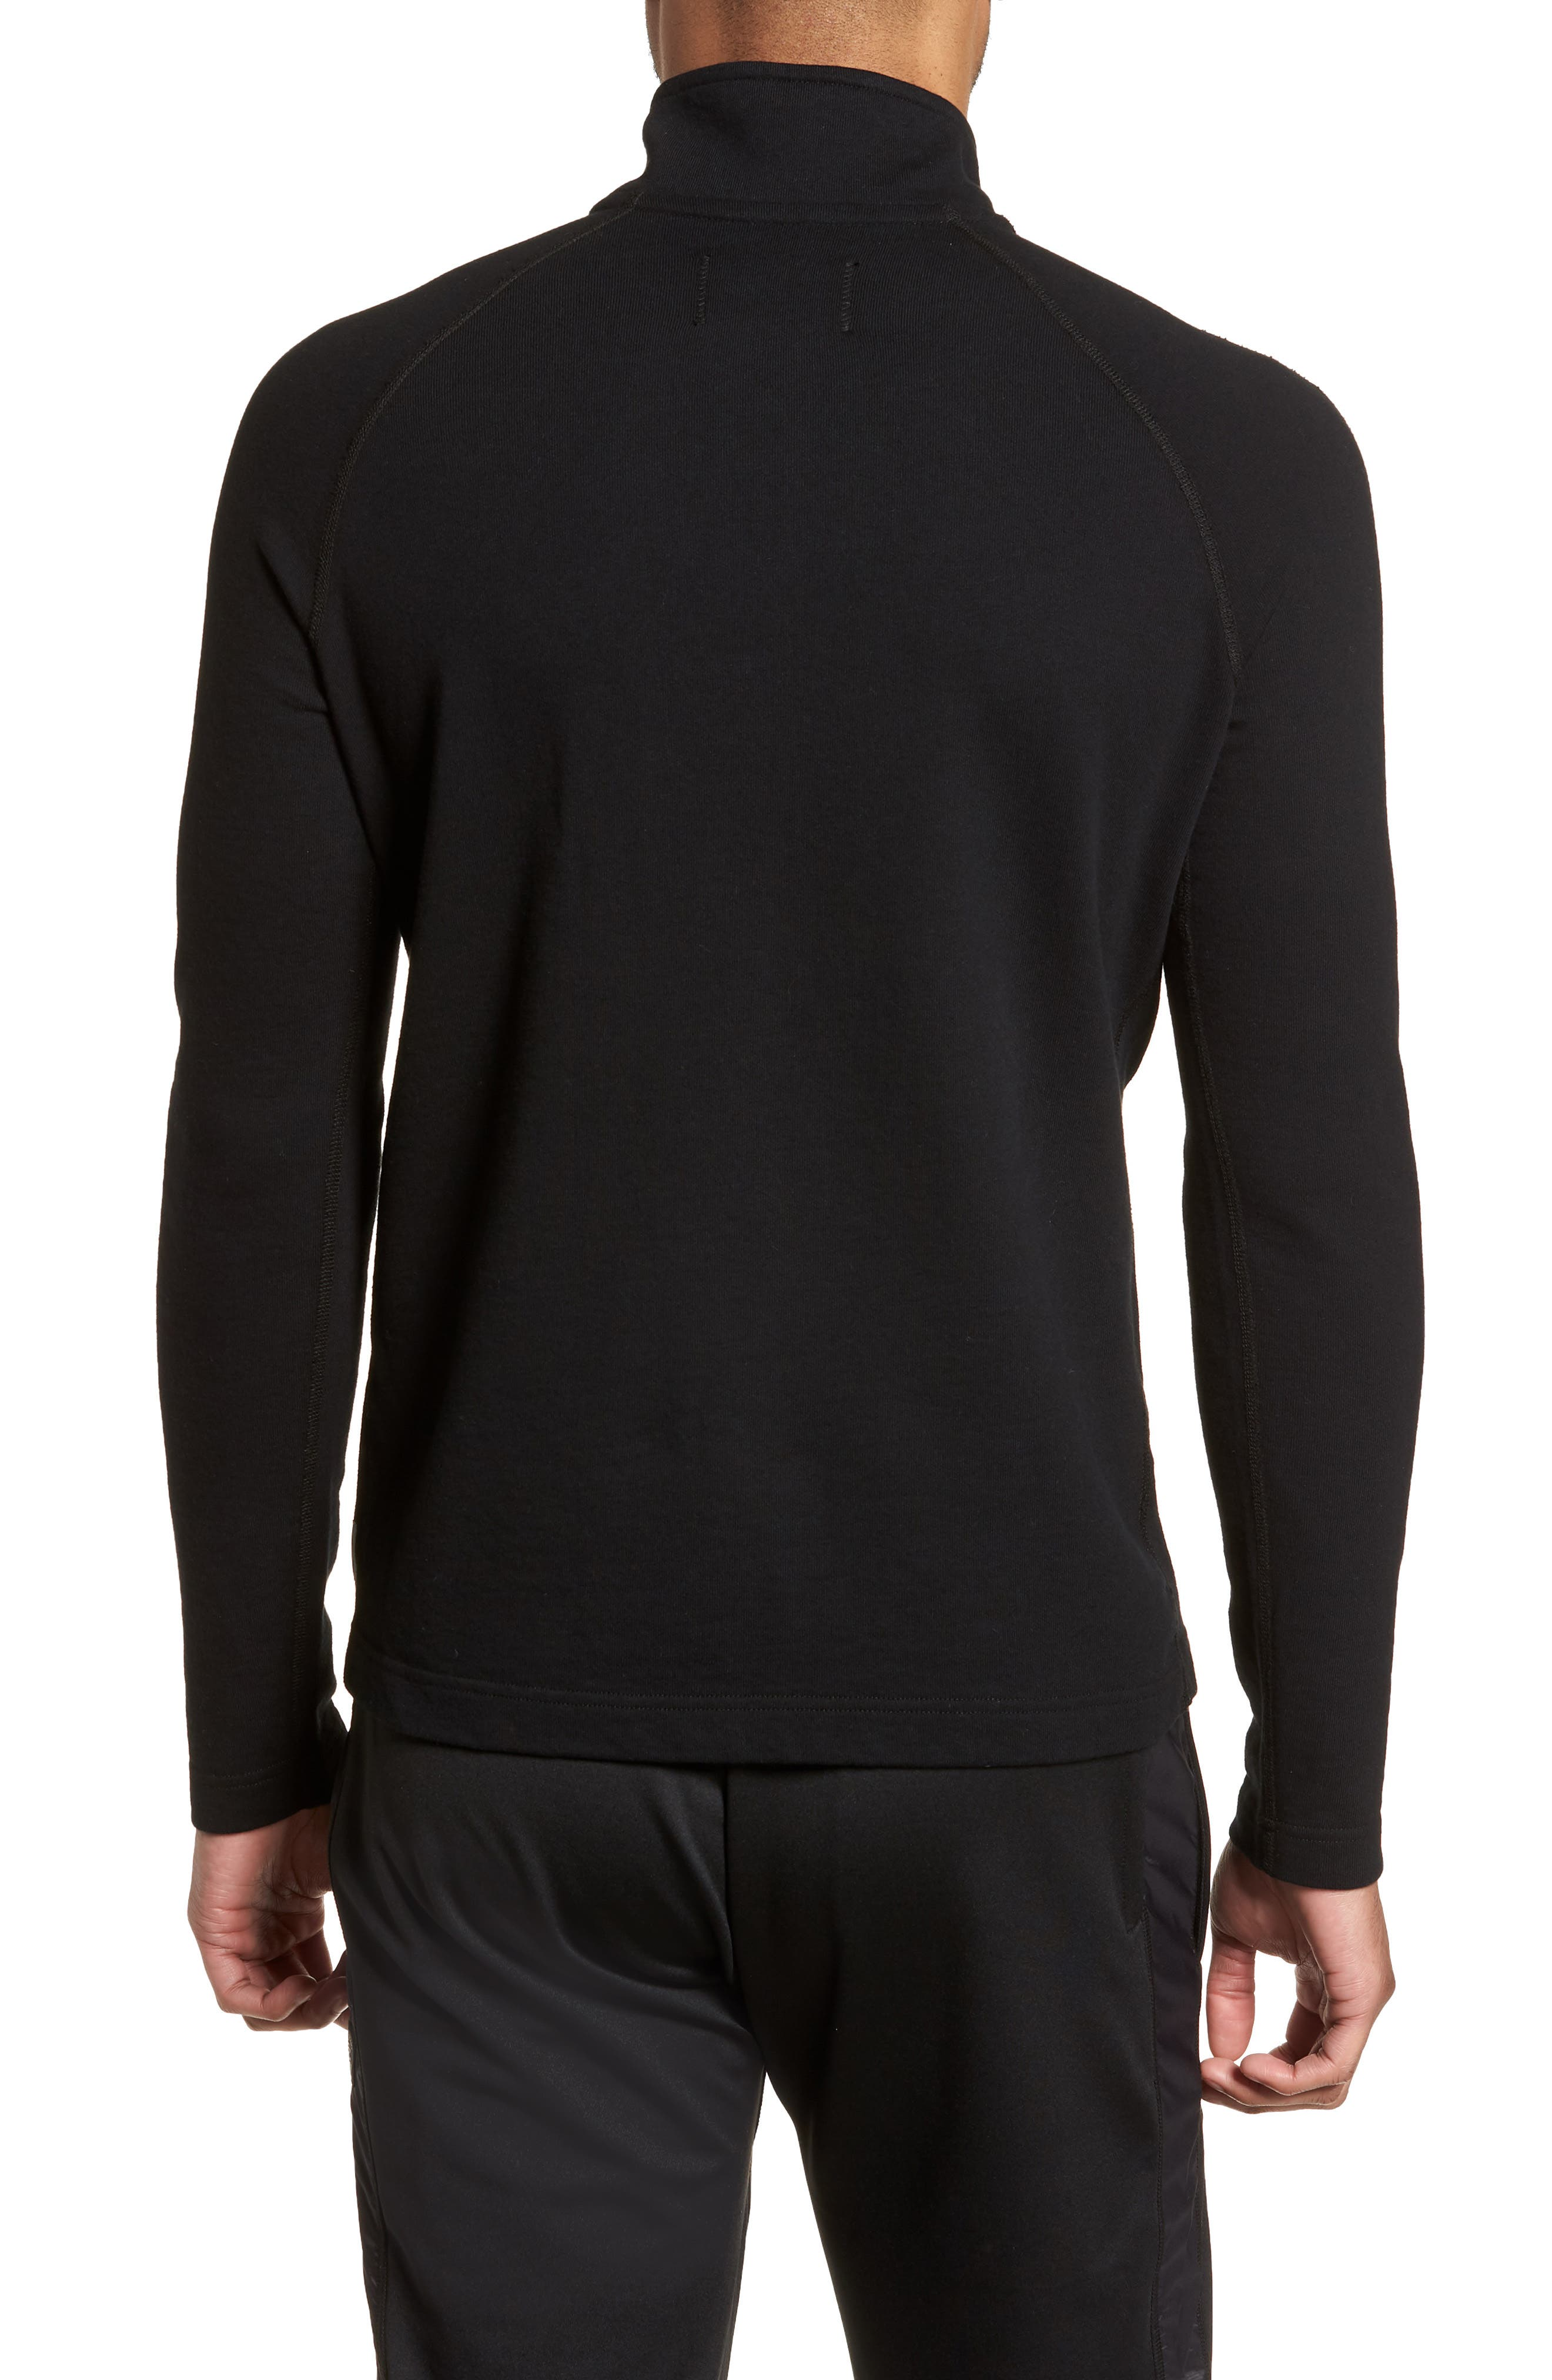 REIGNING CHAMP,                             Half Zip Pullover,                             Alternate thumbnail 2, color,                             001